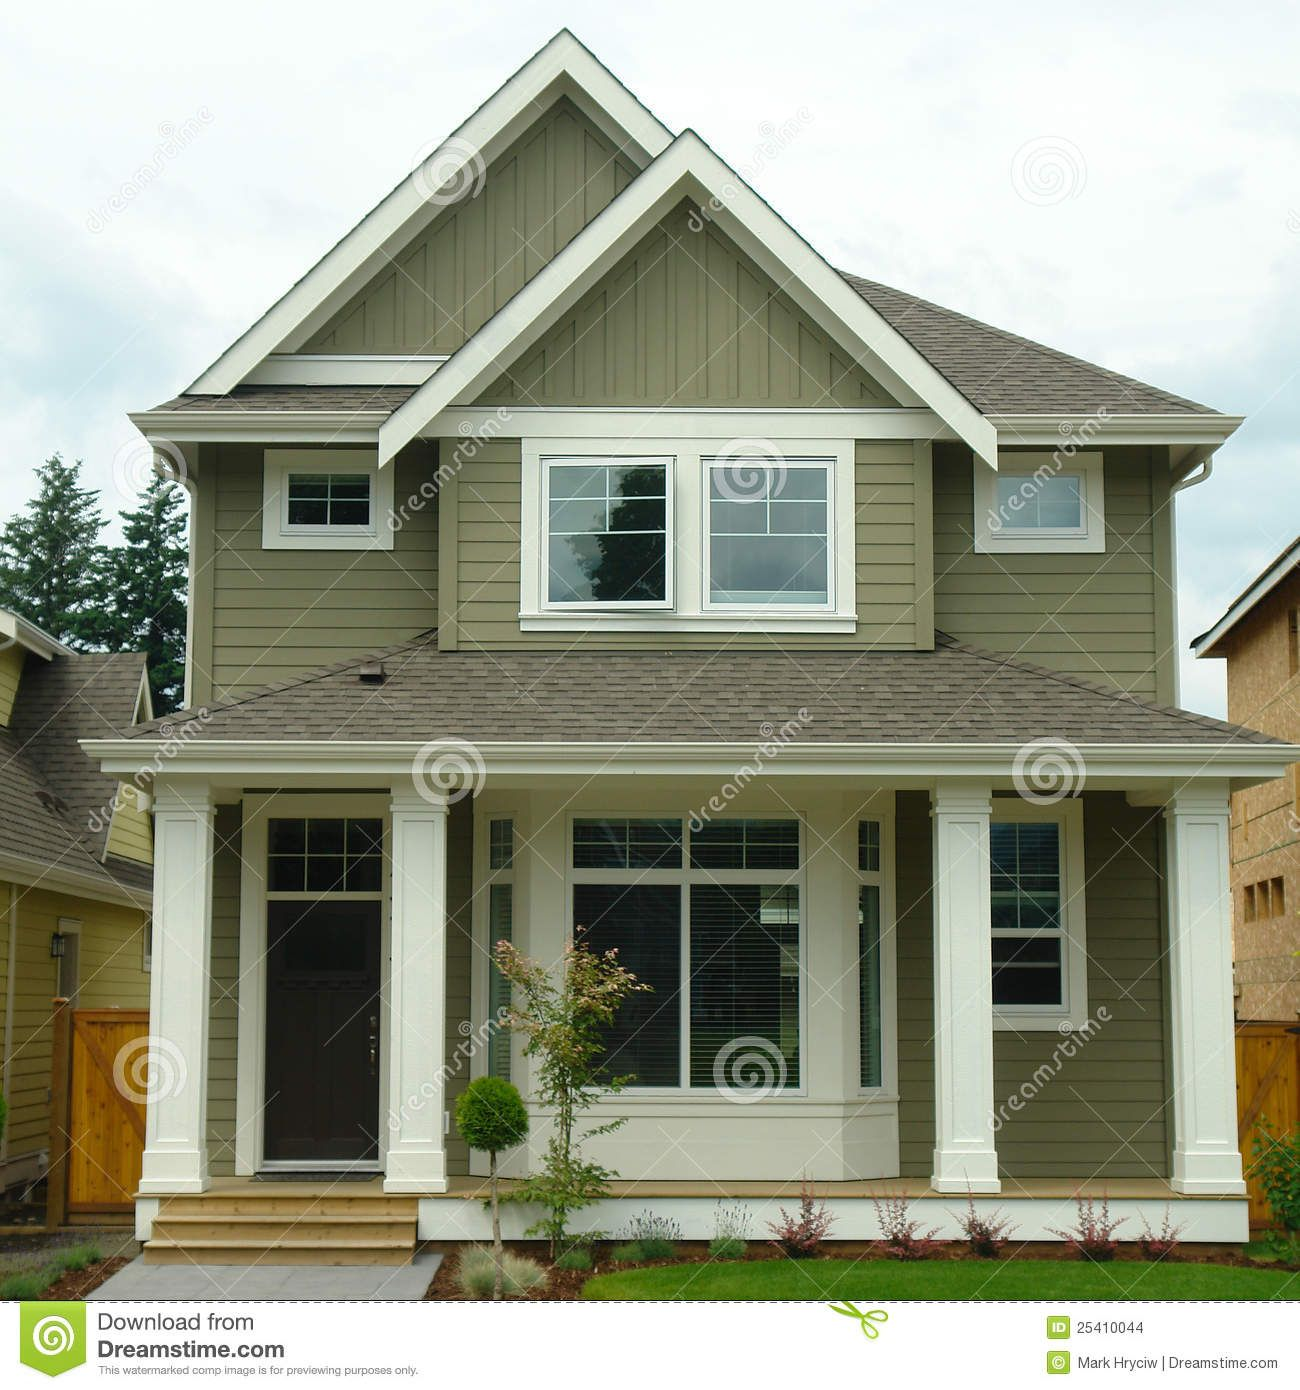 Forest green exterior house color new home house for House paint schemes